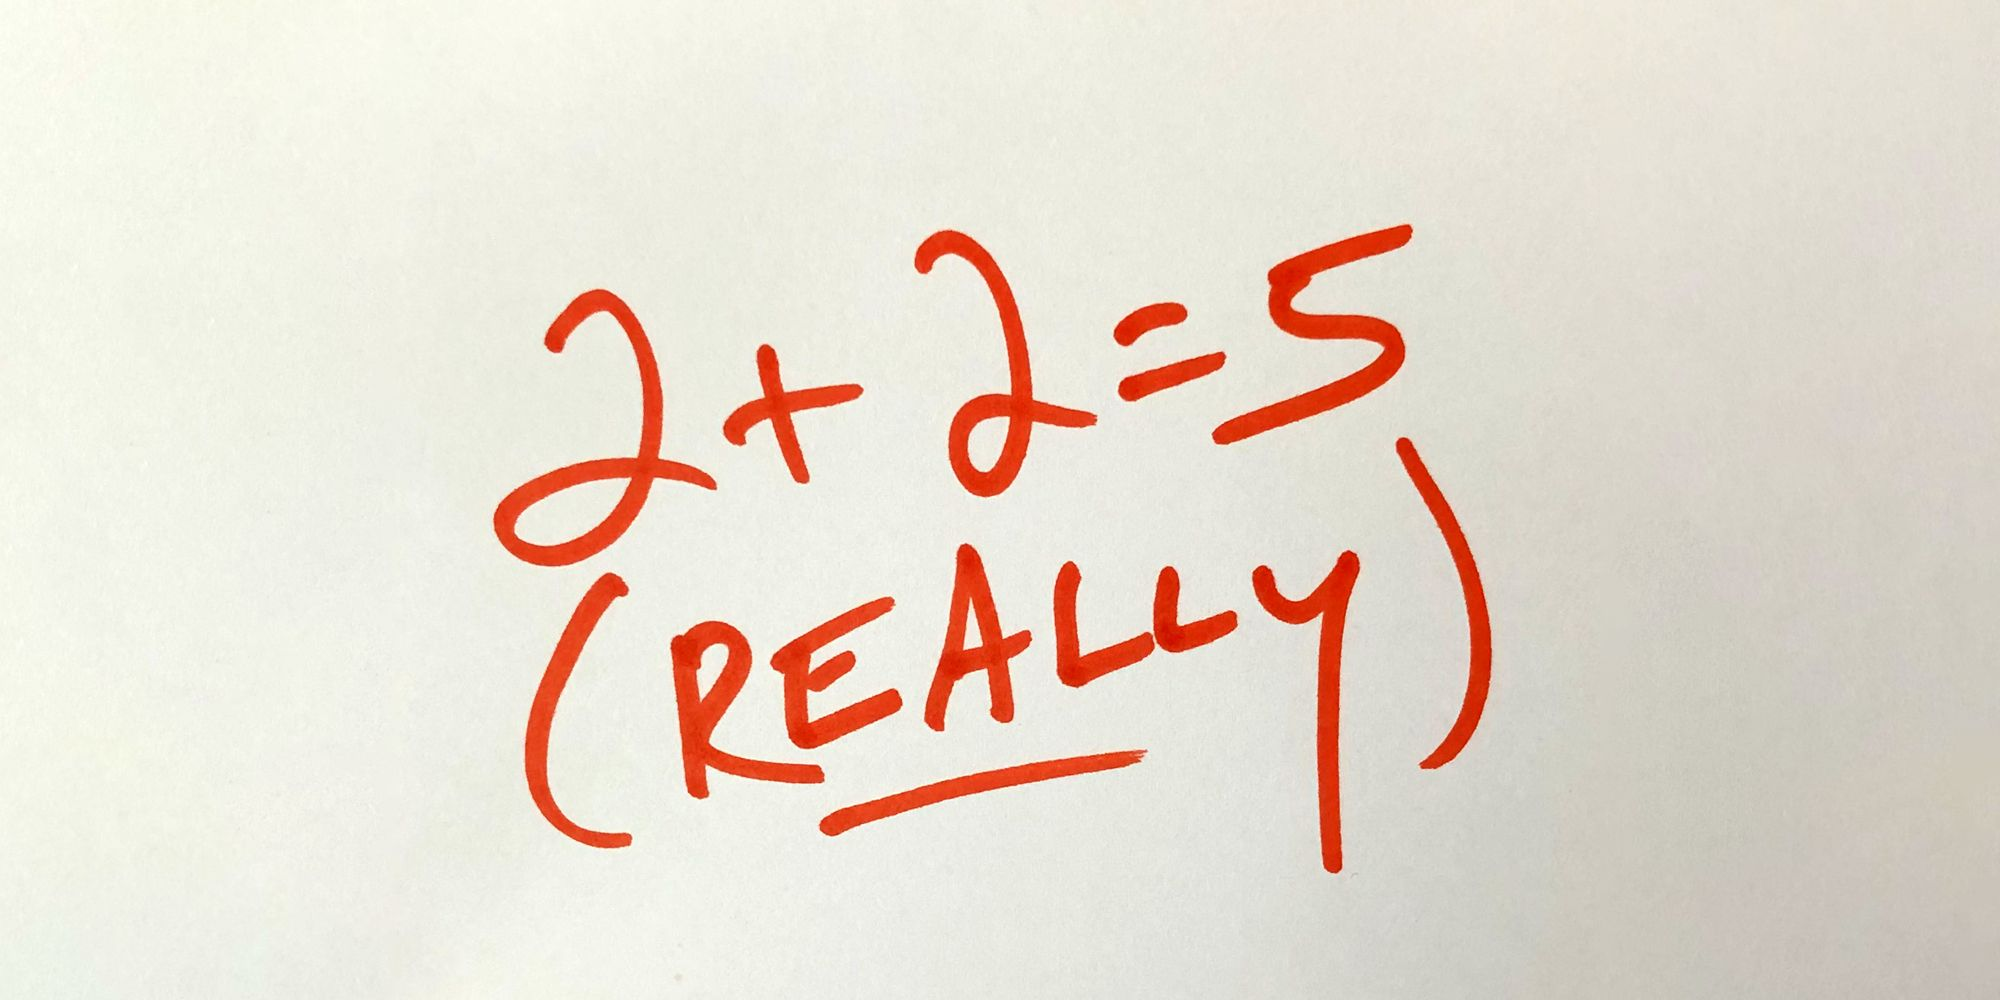 Why Some People Think 2 2 5 Controversial Math Problem